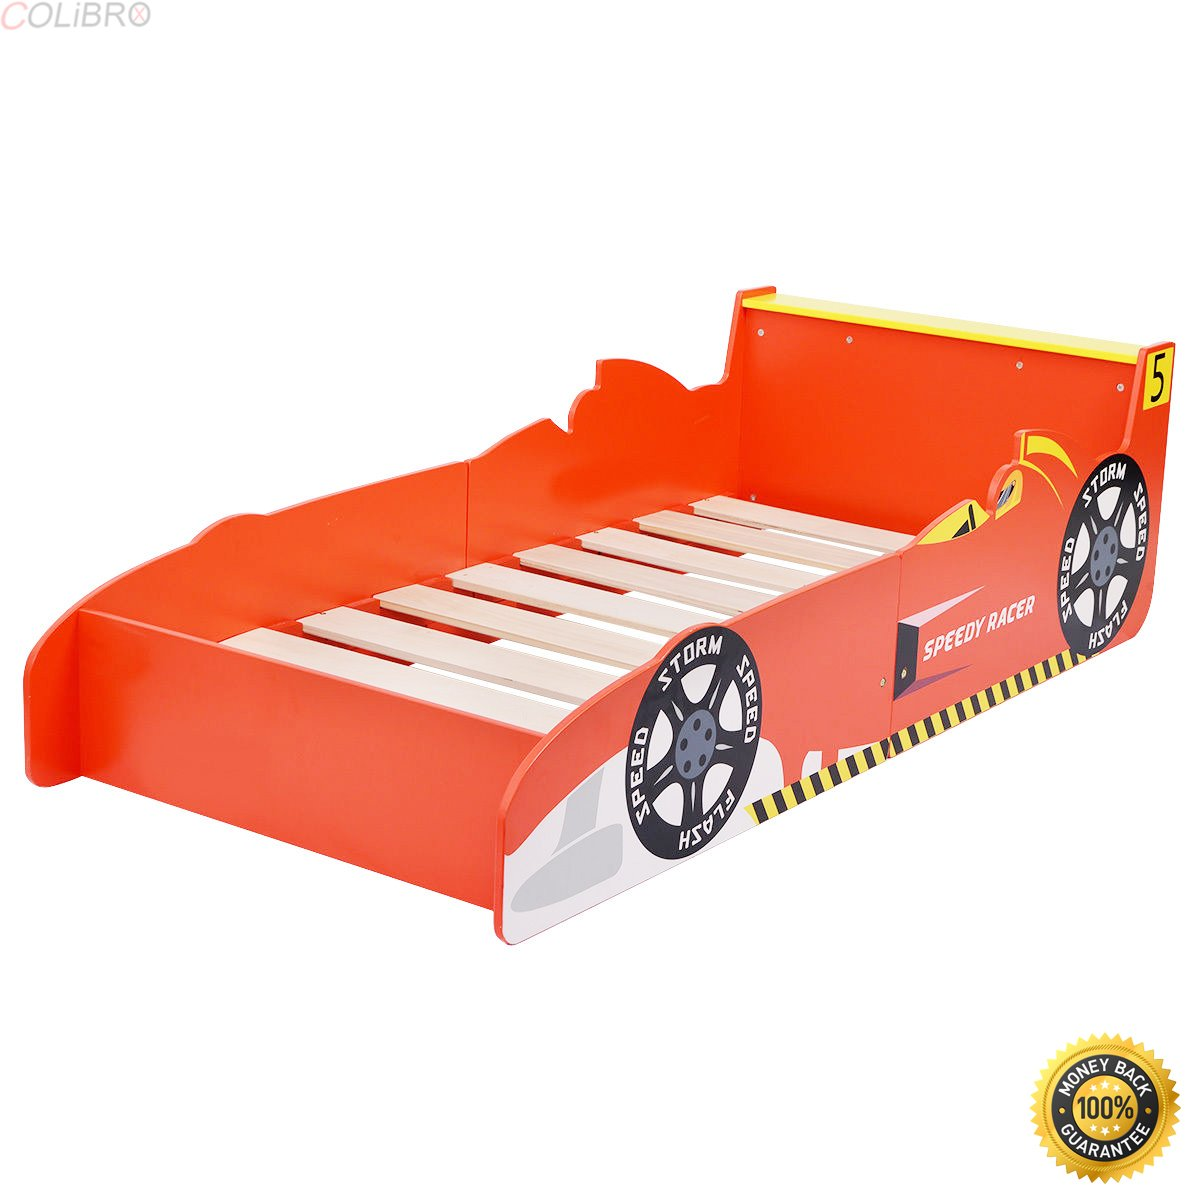 COLIBROX--Kids Race Car Bed Toddler Bed Boys Child Furniture Bedroom Red Wooden New,toddler beds for boys,cheap toddler beds,car bed twin, kids race car Toddler Bed